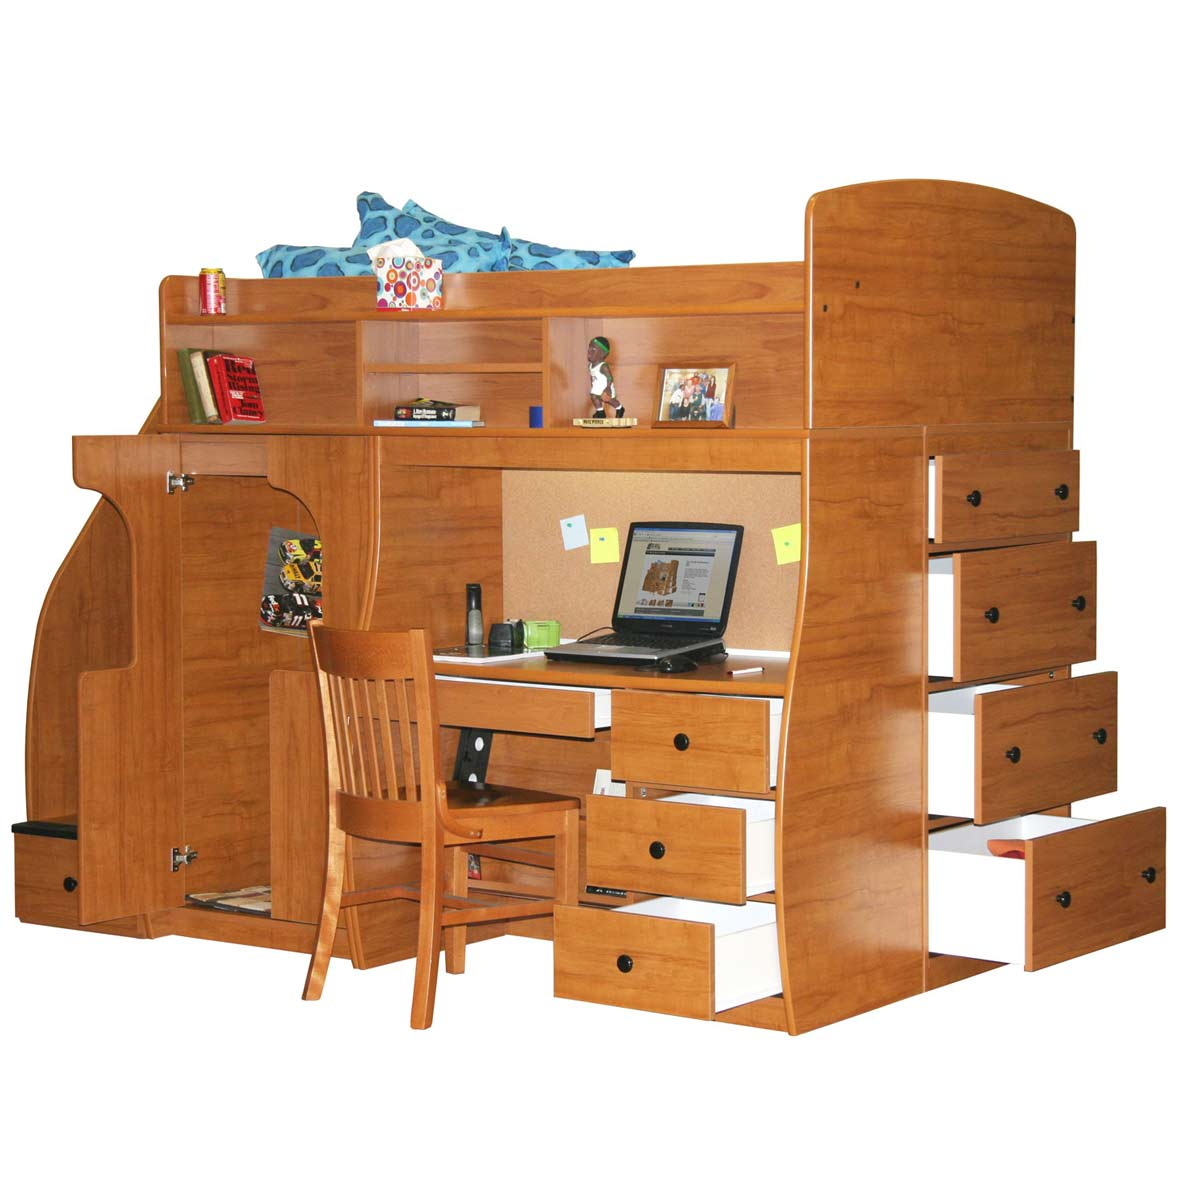 Berg Furniture Play U0026 Study Fun Center Play, Study U0026 Storage With 4 Stairs  FREE SHIPPING